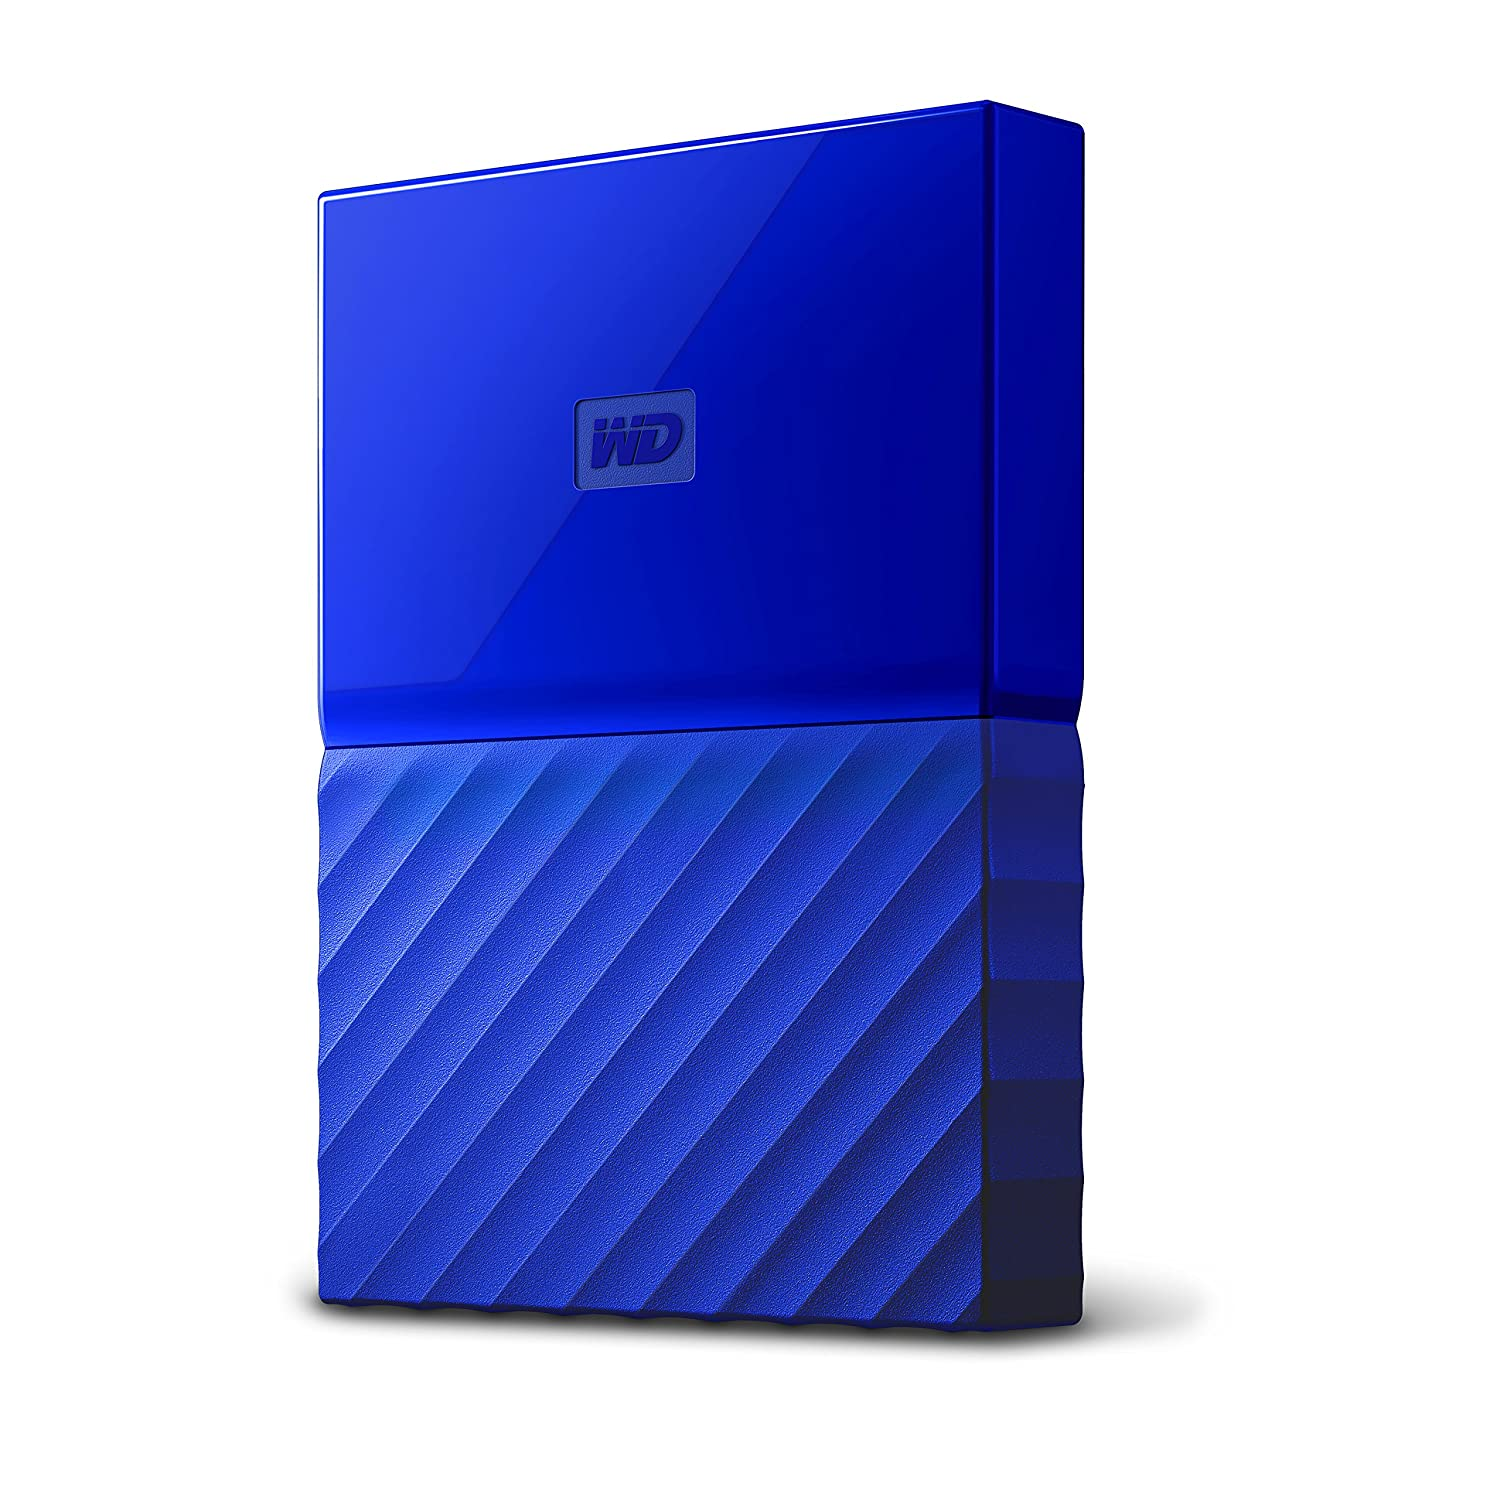 Wd My Passport Portable 3tb External Hard Drive And Auto Backup Software Blue